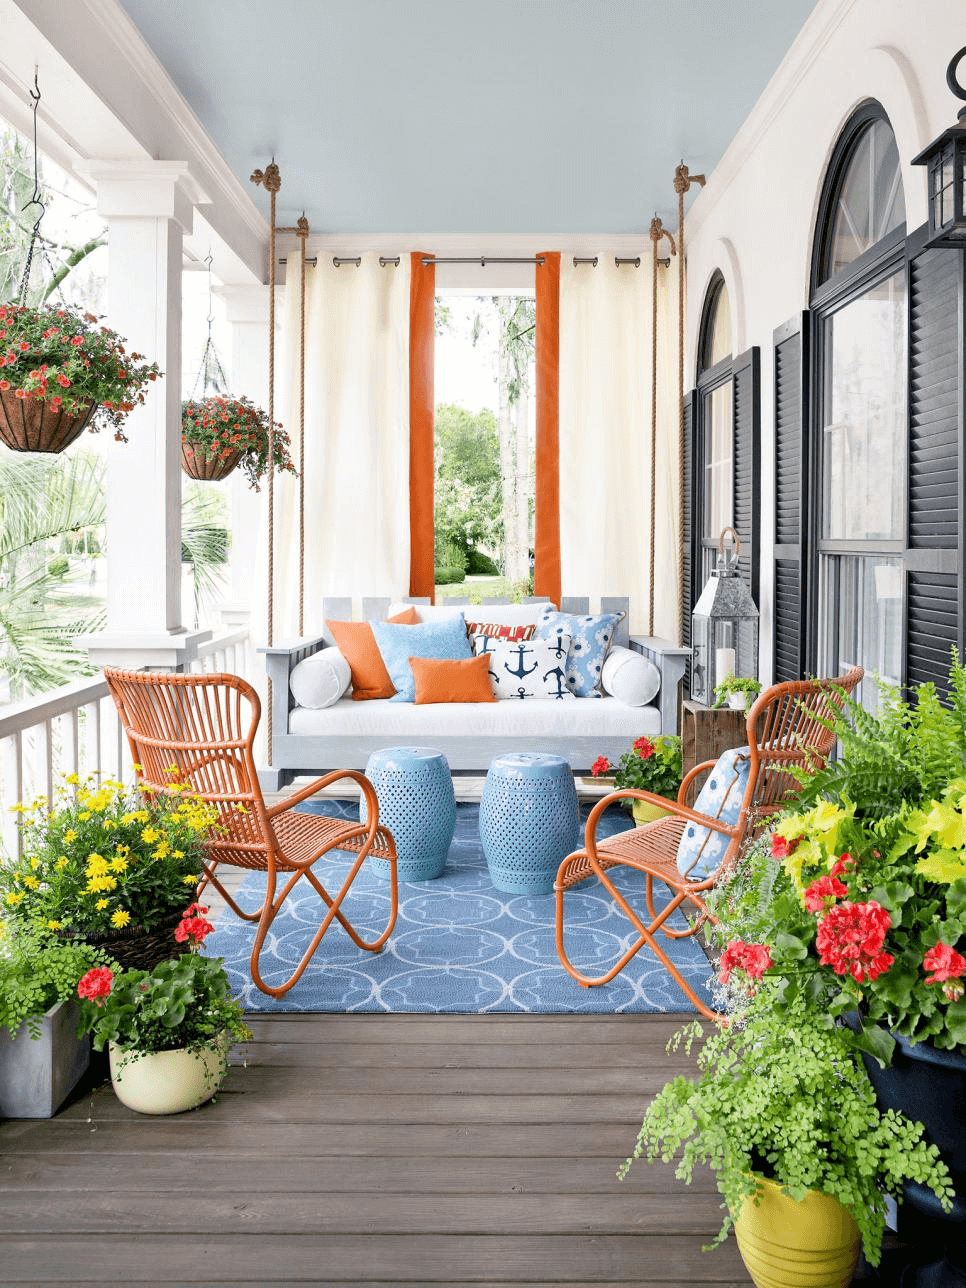 DIY PORCH DECOR IDEAS FOR SPRING AND SUMMER WITH PLAY COLORS